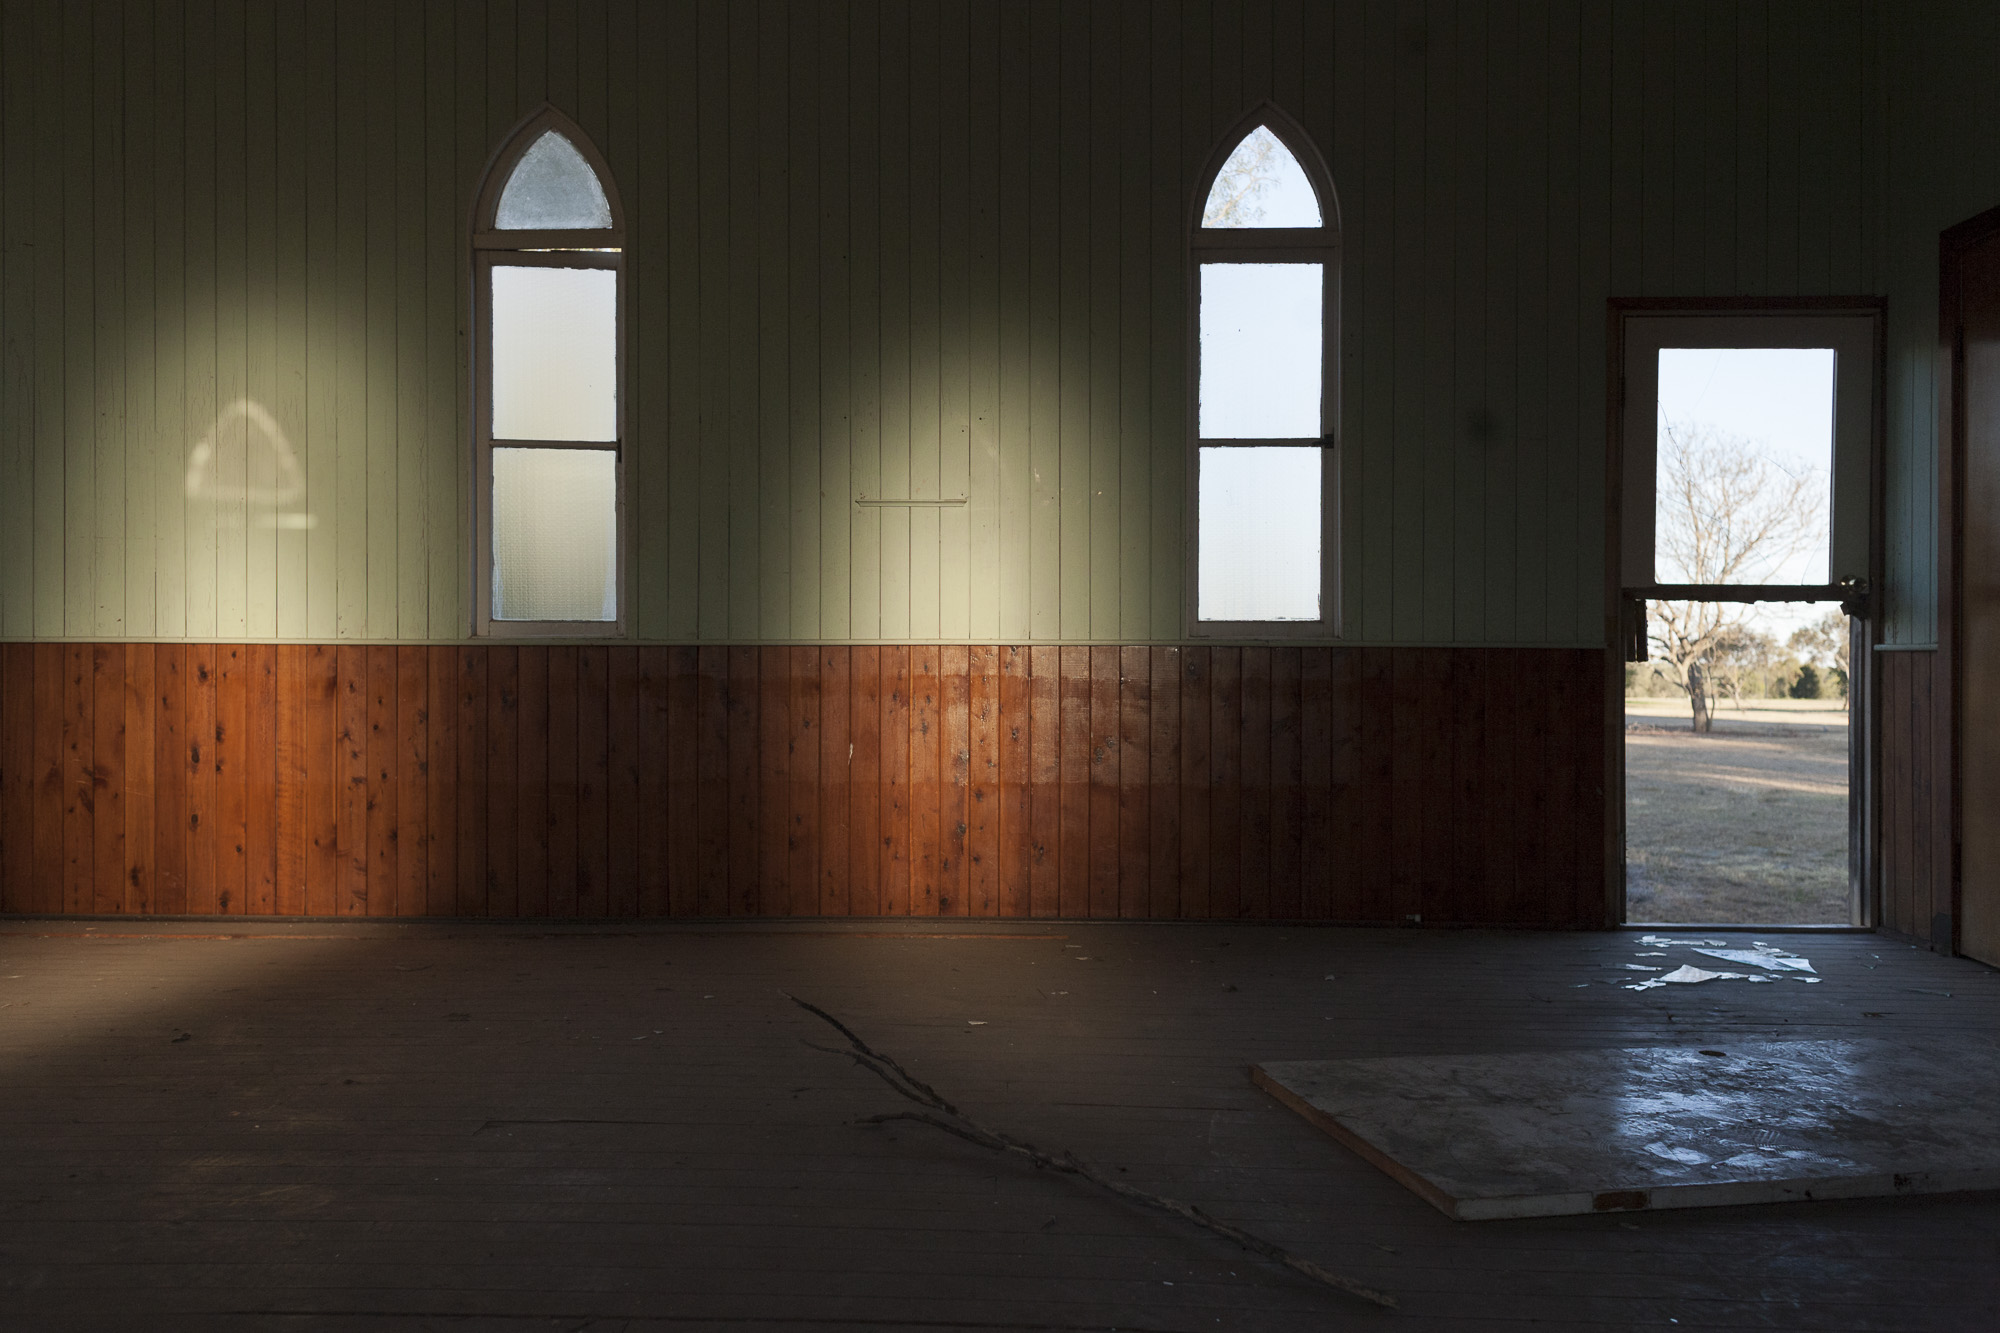 Church in a town erased (to expand a mine) , 2011  57x100cm, Pigment print on platine fibre paper